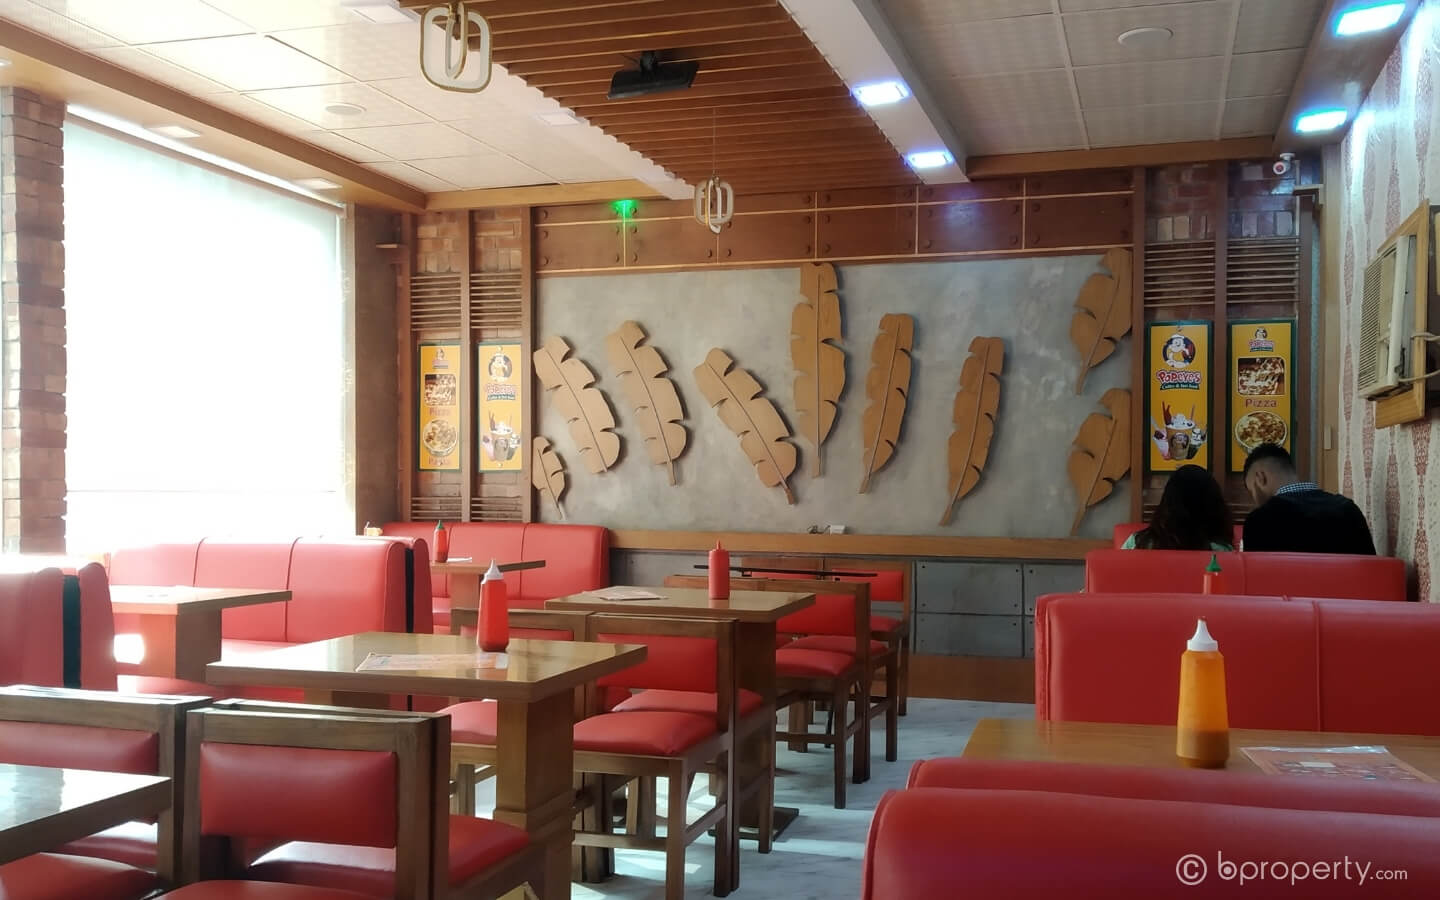 Popeyes is one of the best restaurants in Khilgaon for their coffees